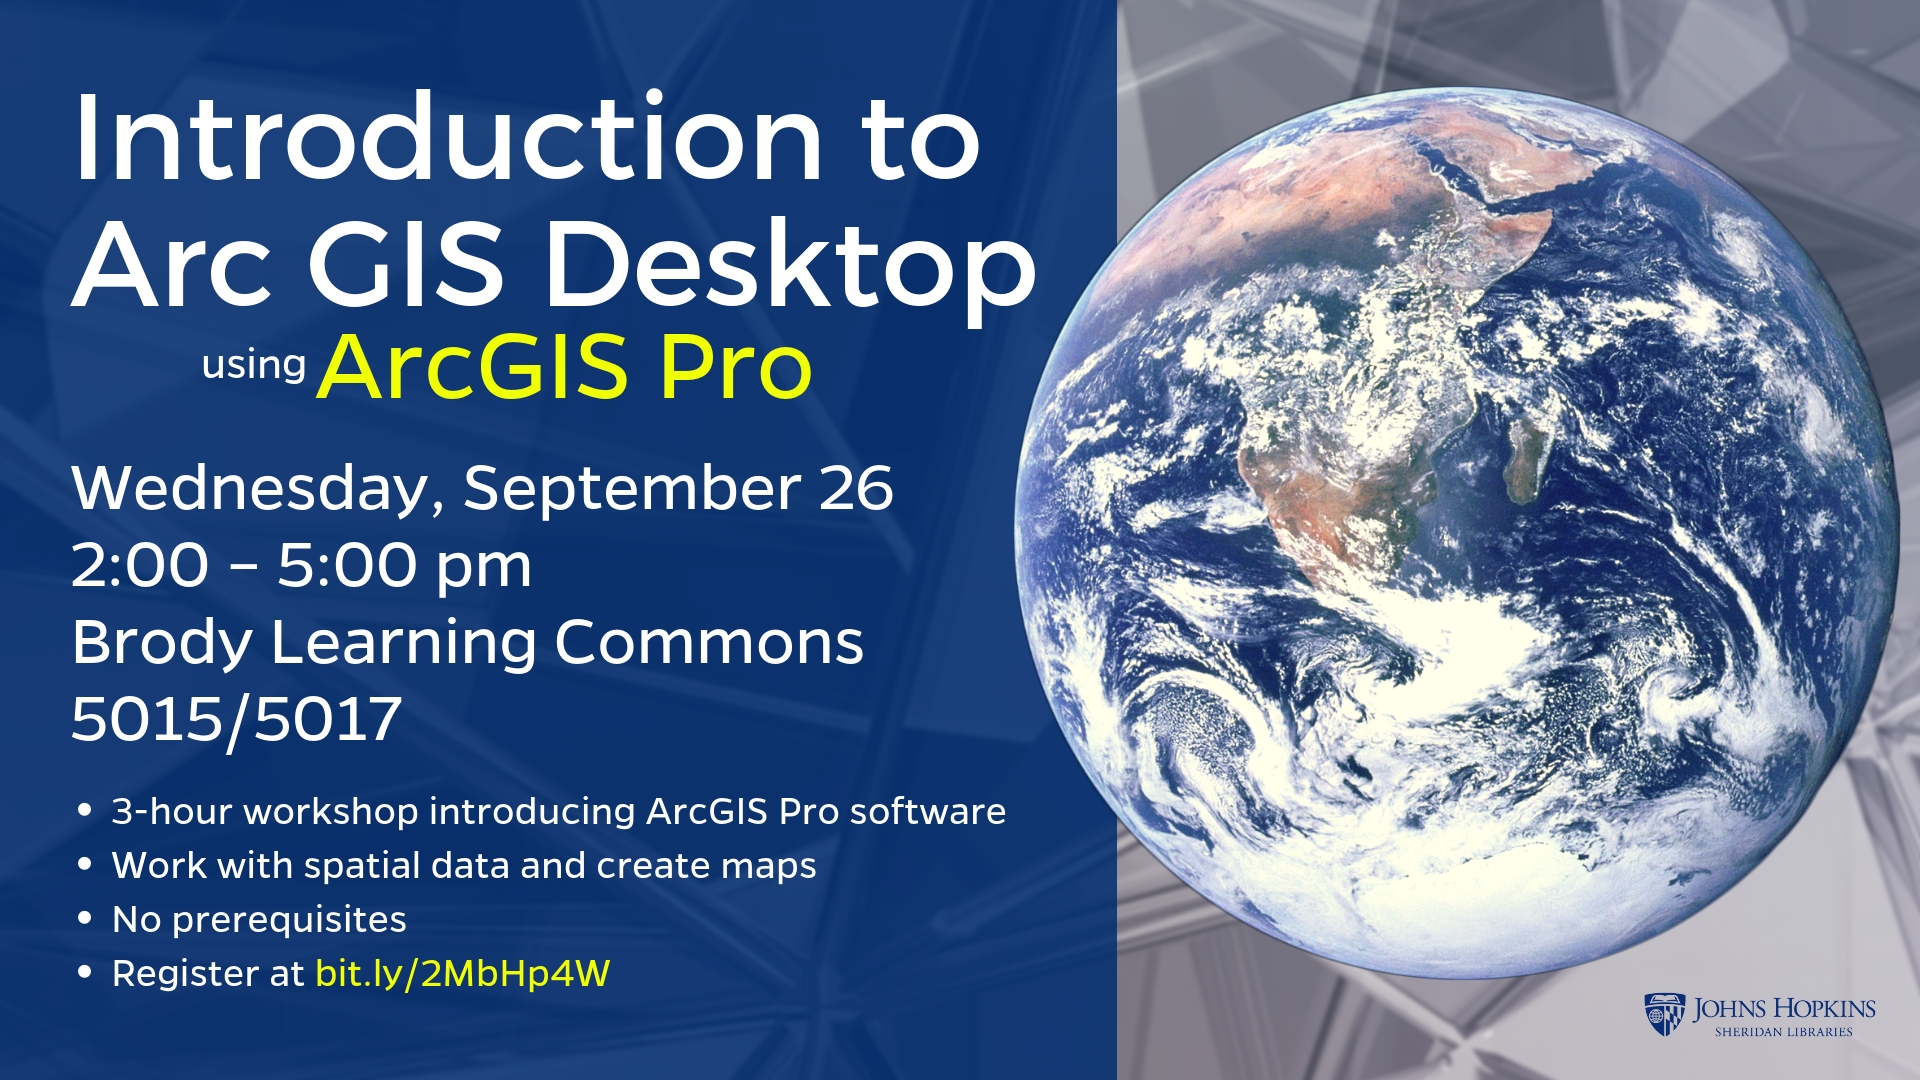 Information regarding Introduction to  Arc GIS Desktop is as follows Create Your Own Tags: is #gis and End Date is September 26 2018 and Start date is September 11 2018 and File is Browse and Are you a student or a department? is Department and File Name is arc-gis-pro-BLC-1_comp.jpg and Name of Ad/Event is Introduction to  Arc GIS Desktop and Panel is Main and Name is Meredith  Shelby and Group Name is MSE Library and Email is mshelby@jhu.edu and Affiliation is Other and